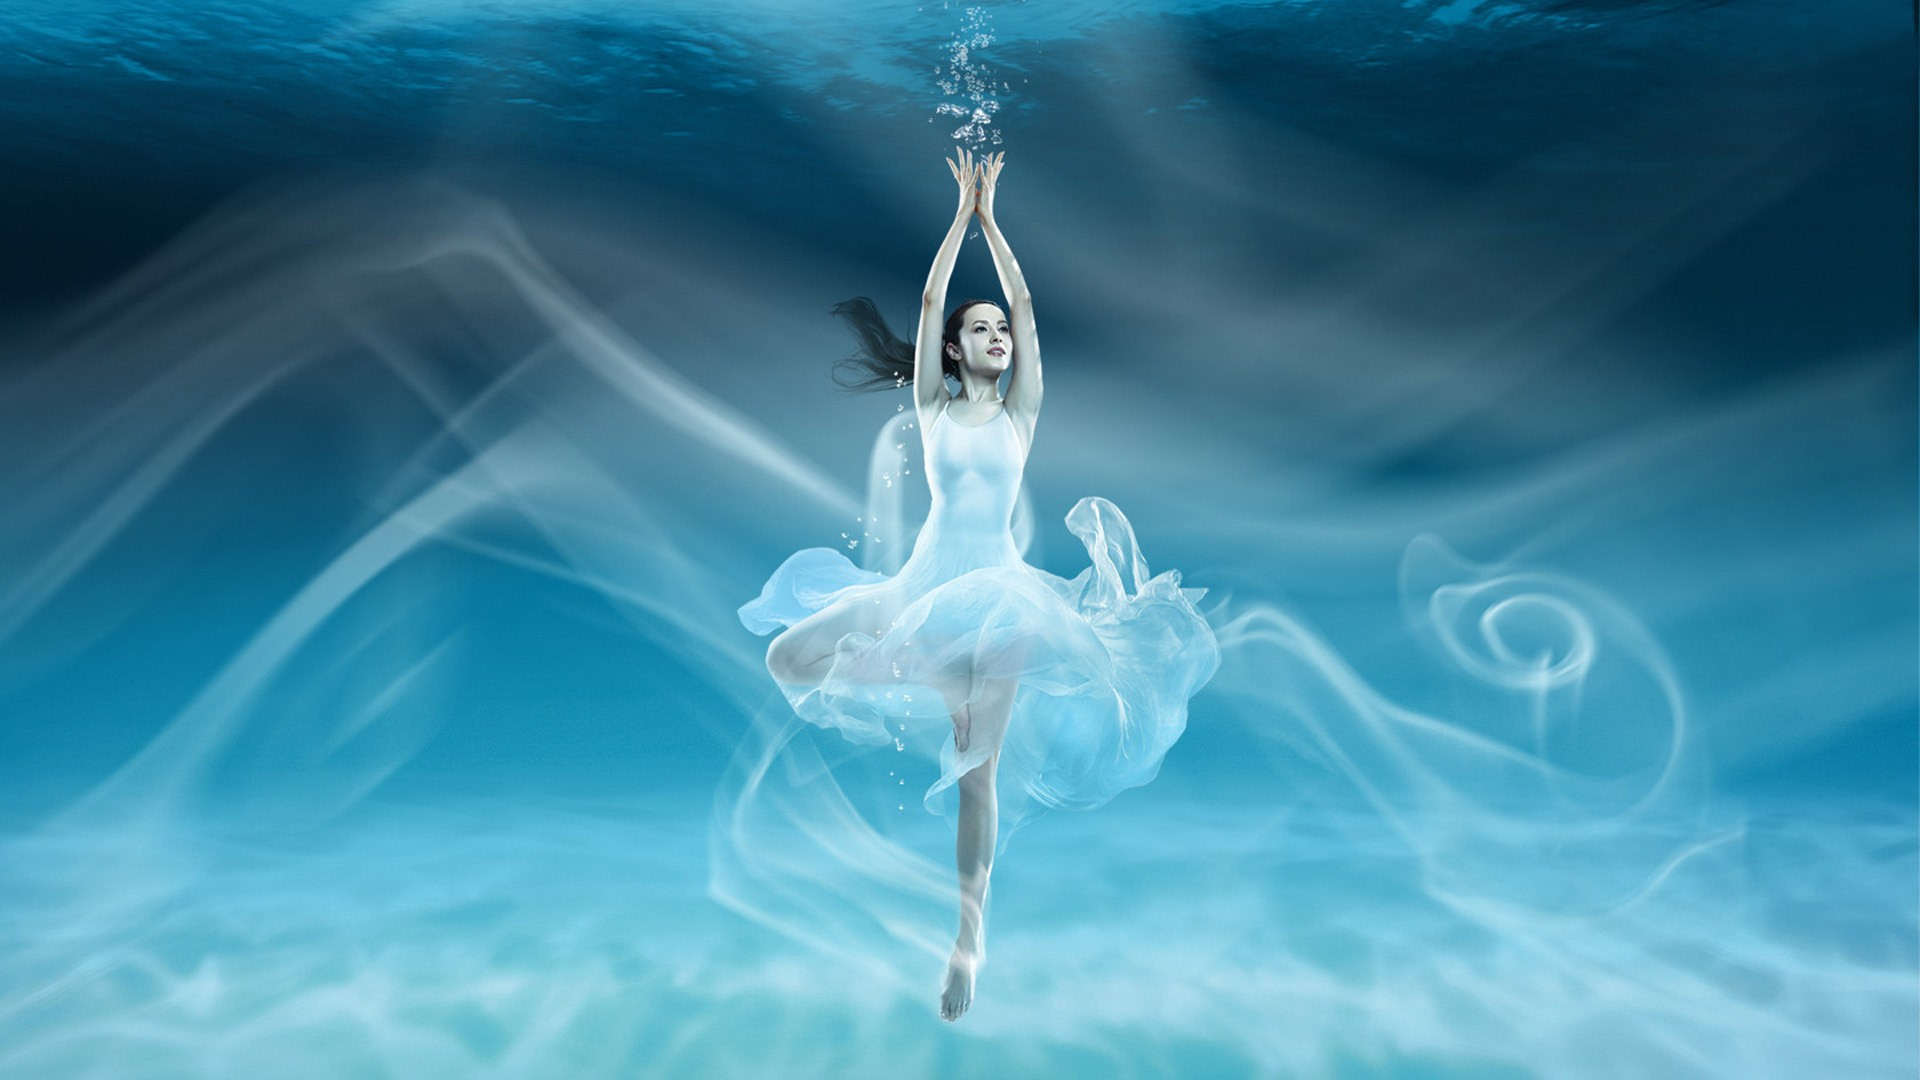 Water Ballet Beauty Art Desktop Wallpaper 8wallpapers